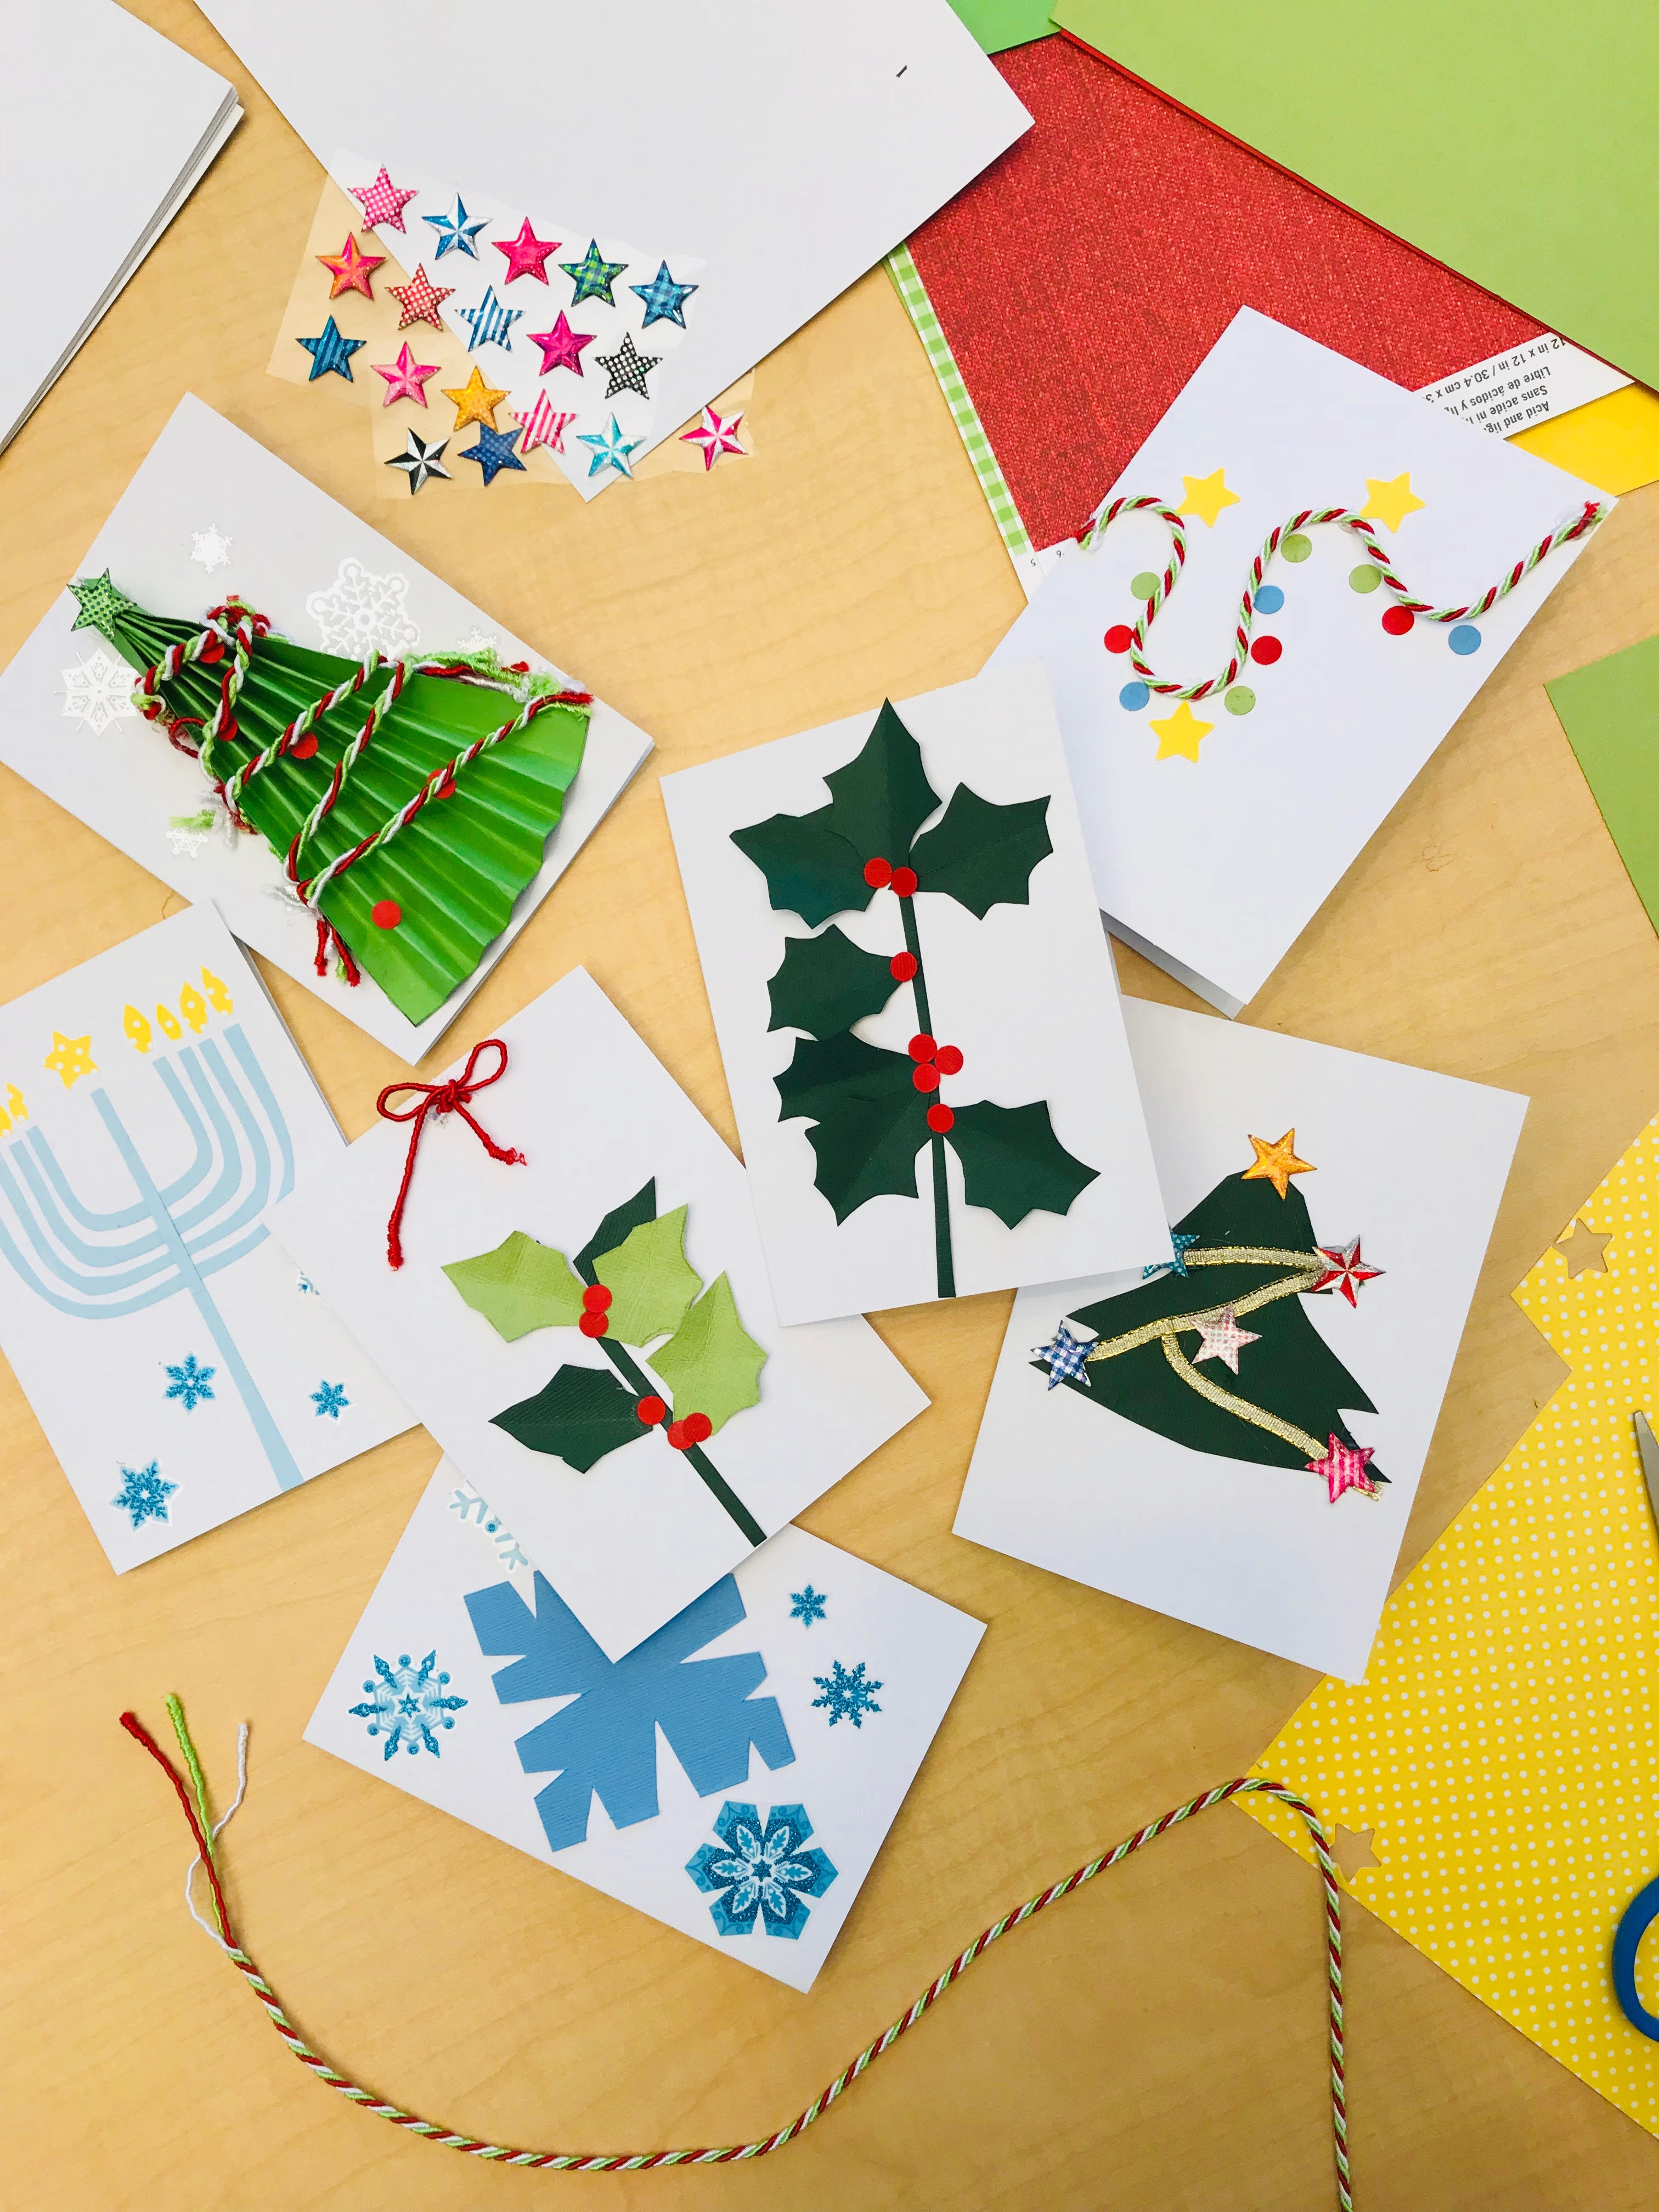 4 Ways You Can Donate Handmade Holiday Cards to Children